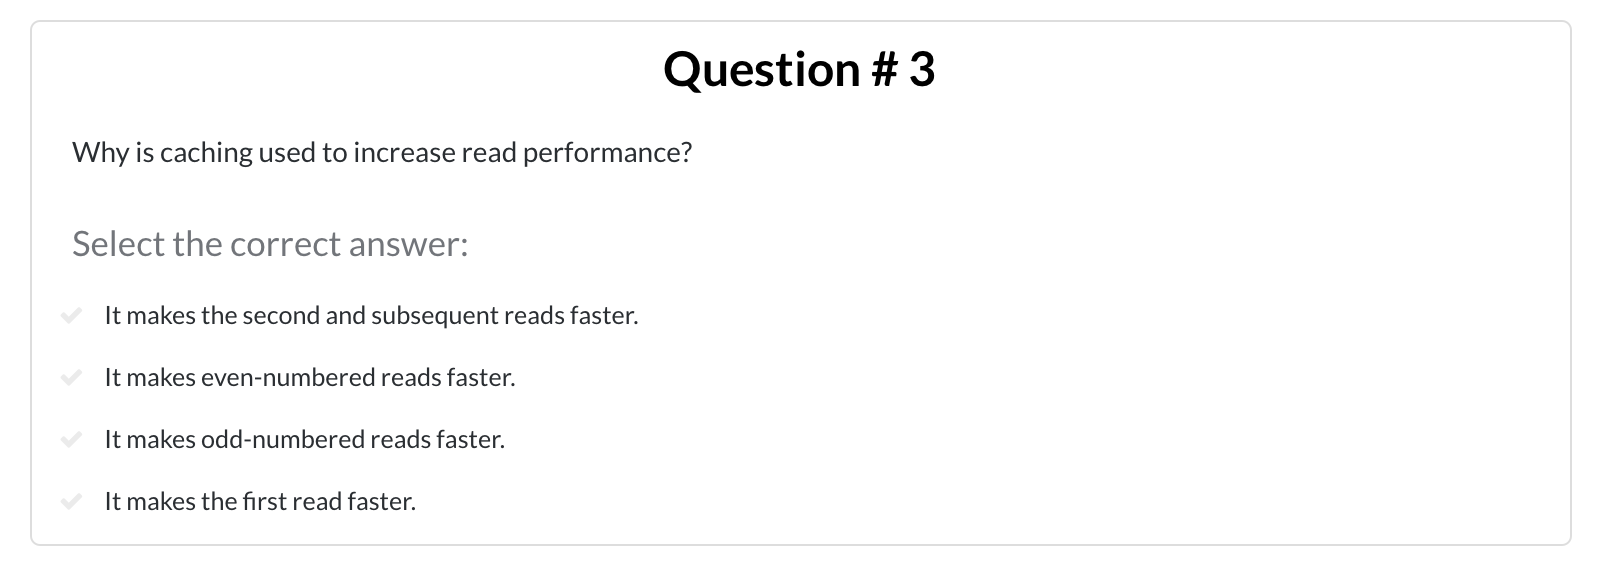 Question 3 of 5: Why is caching used to increase read performance?